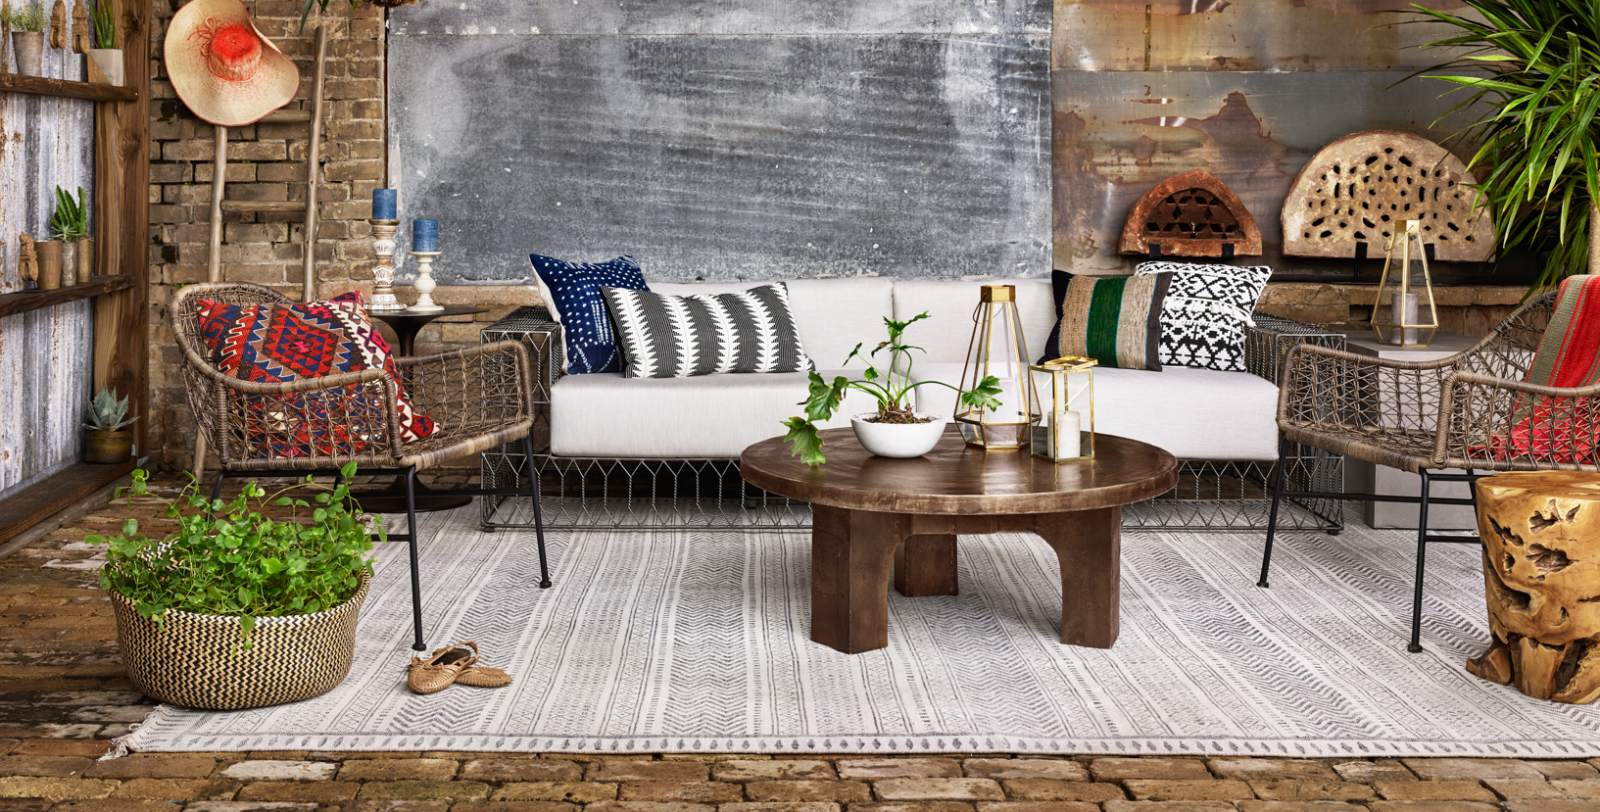 living room on sale modern divider zin home eclectic industrial style furniture holiday